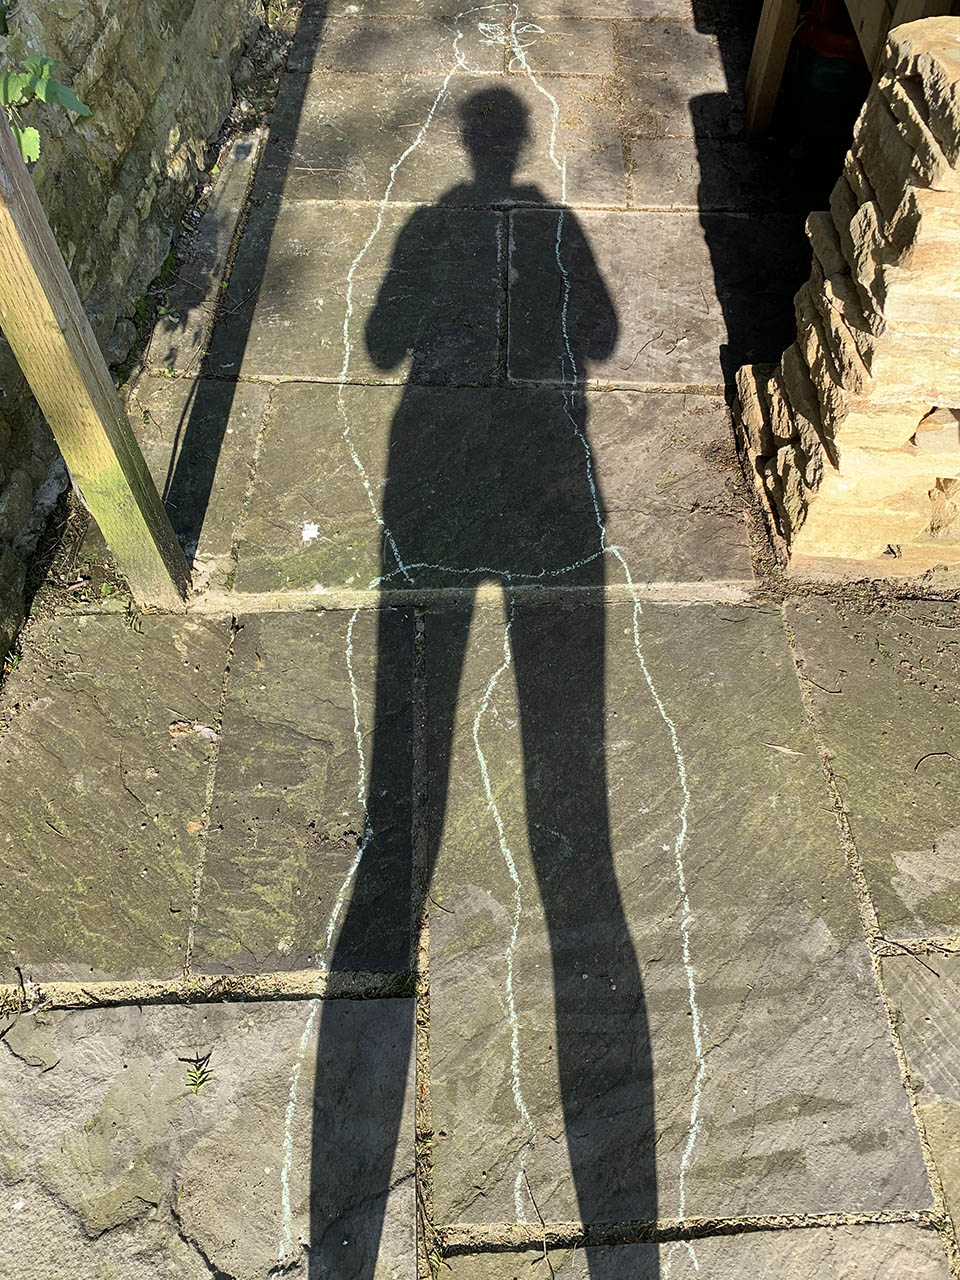 A shadow on the ground with an outline around it